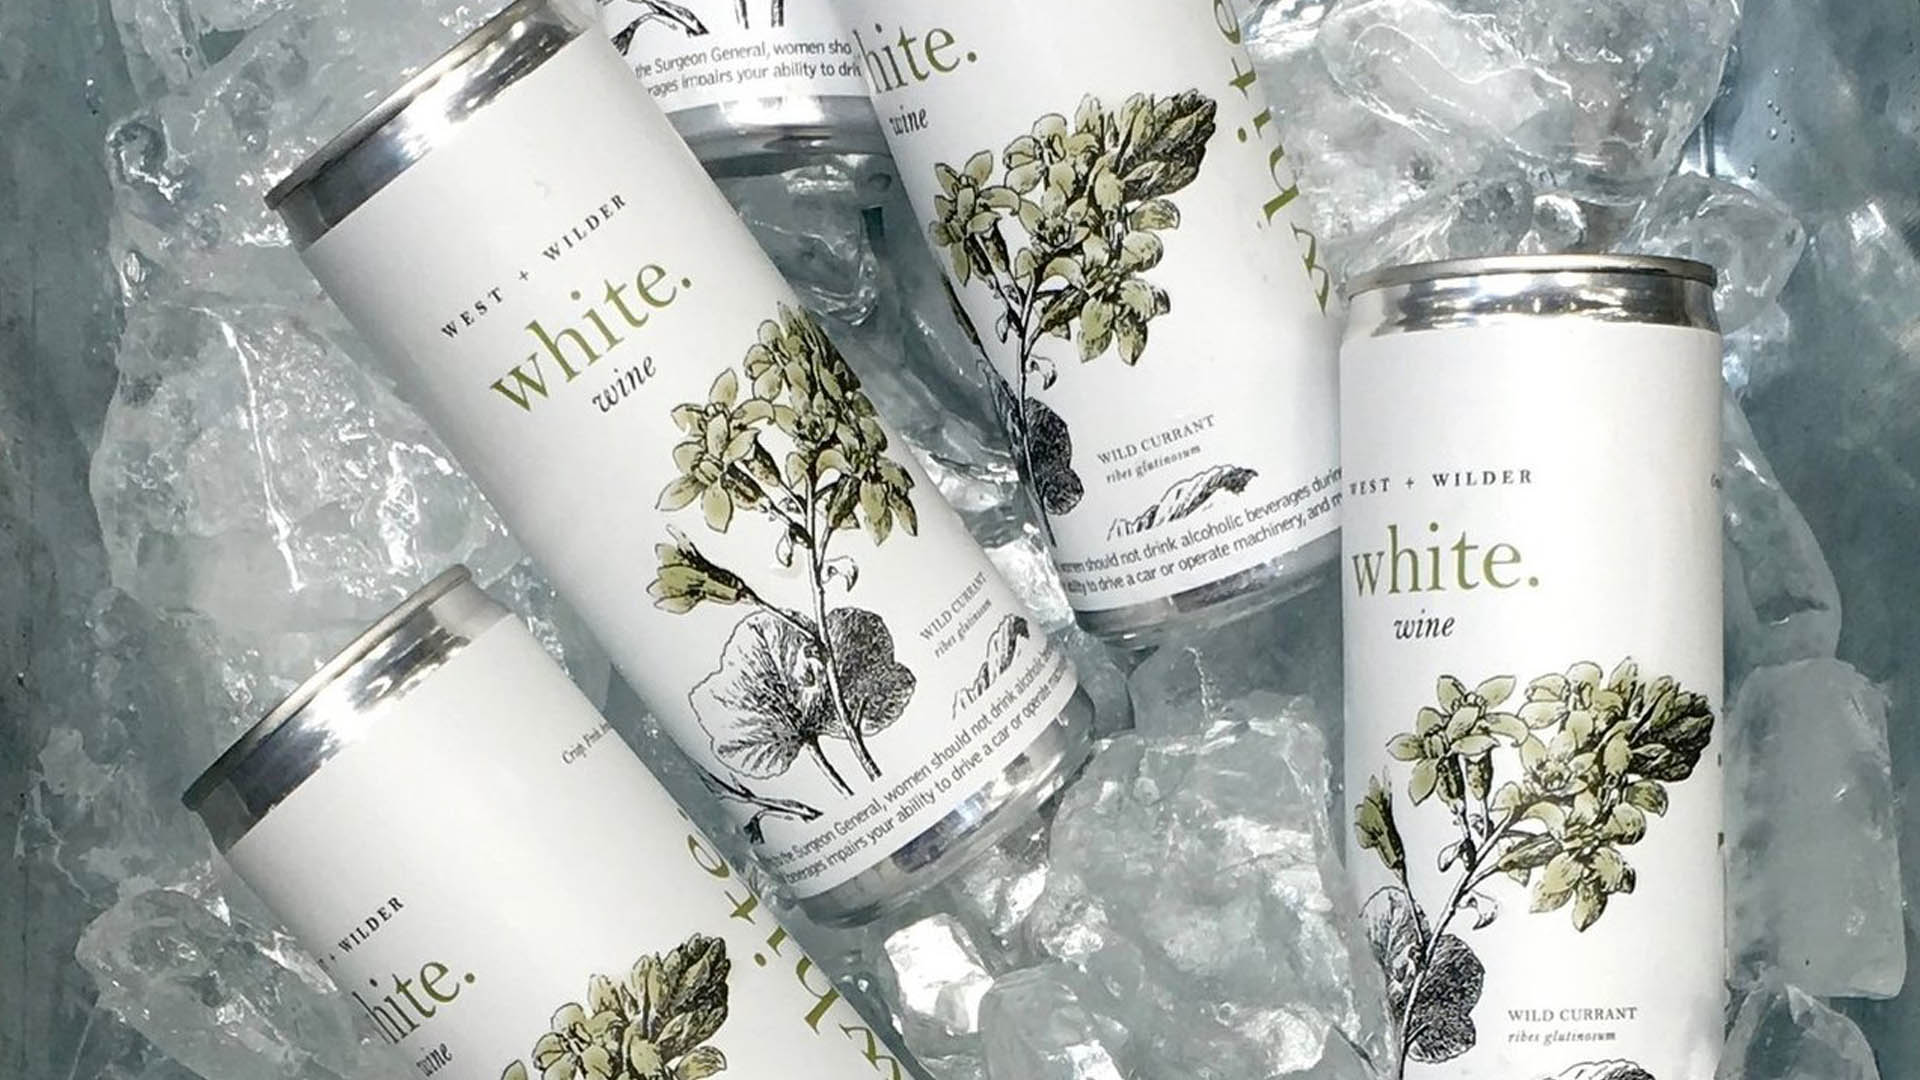 15 recommended wines in cans